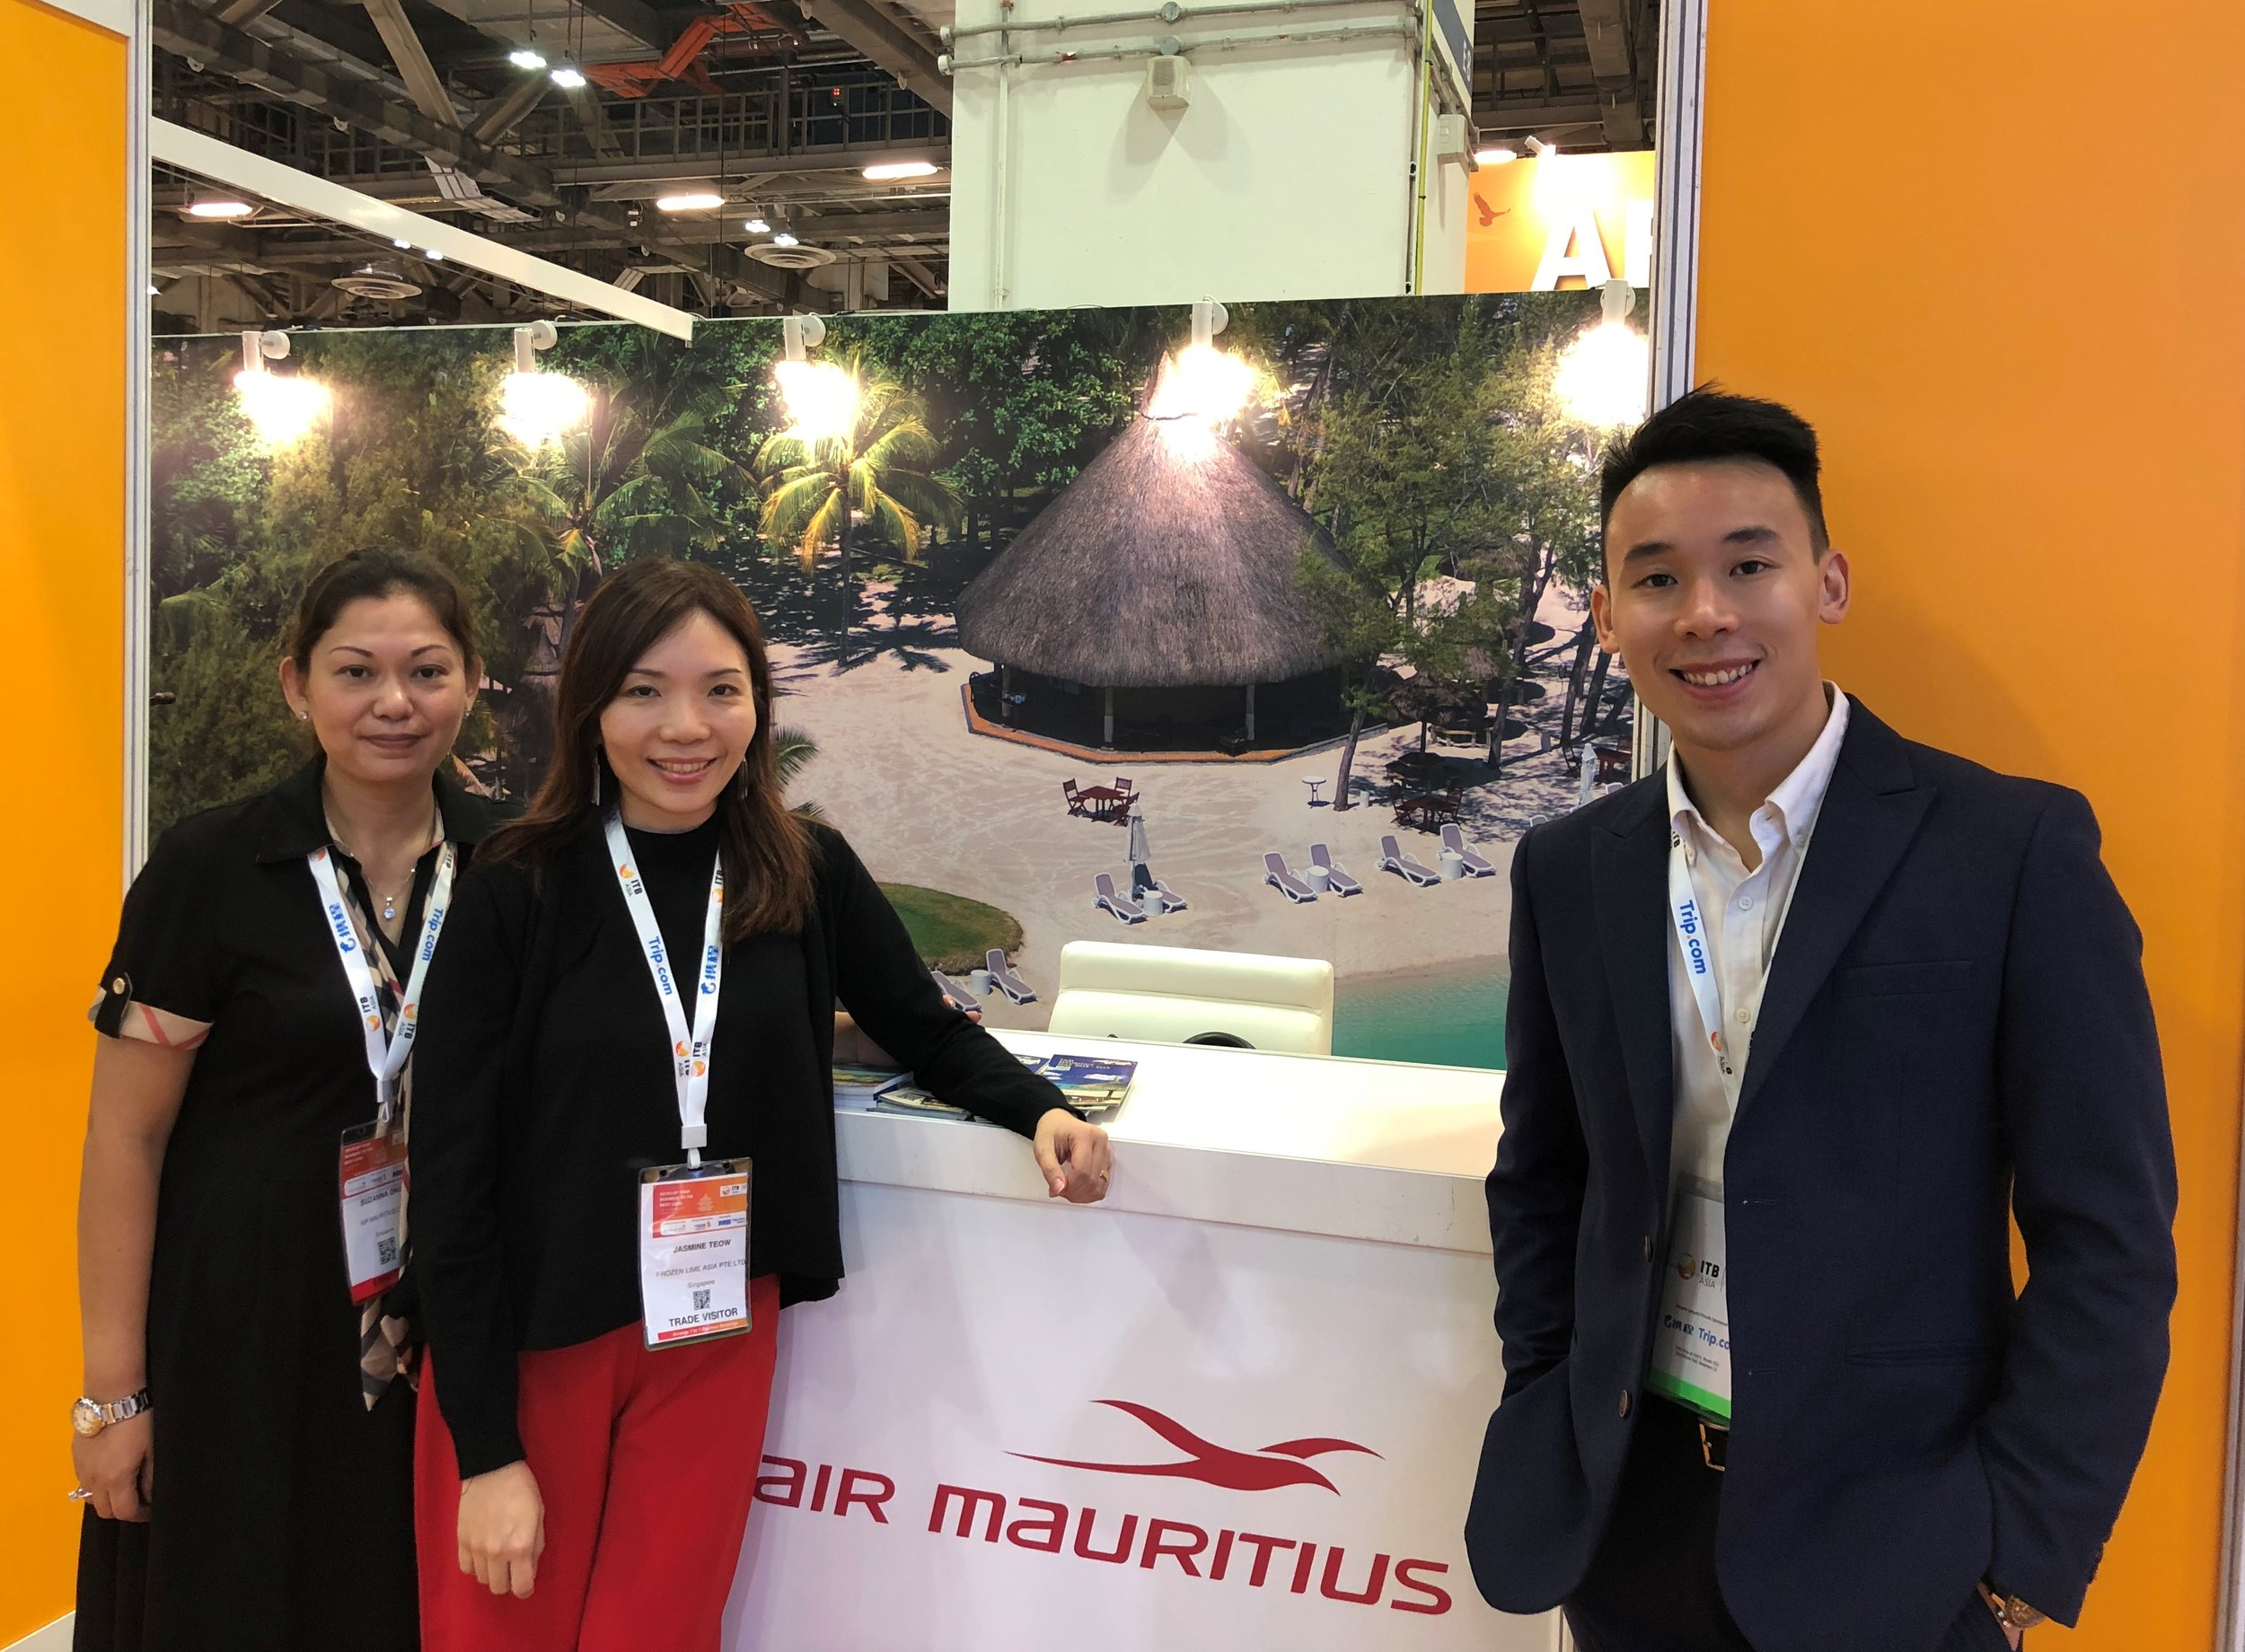 From left to right: Ms Suzanna Ong (Air Mauritius), Ms Jasmine Teow (FLA), Mr Pow Zhi Hoe (FLA).